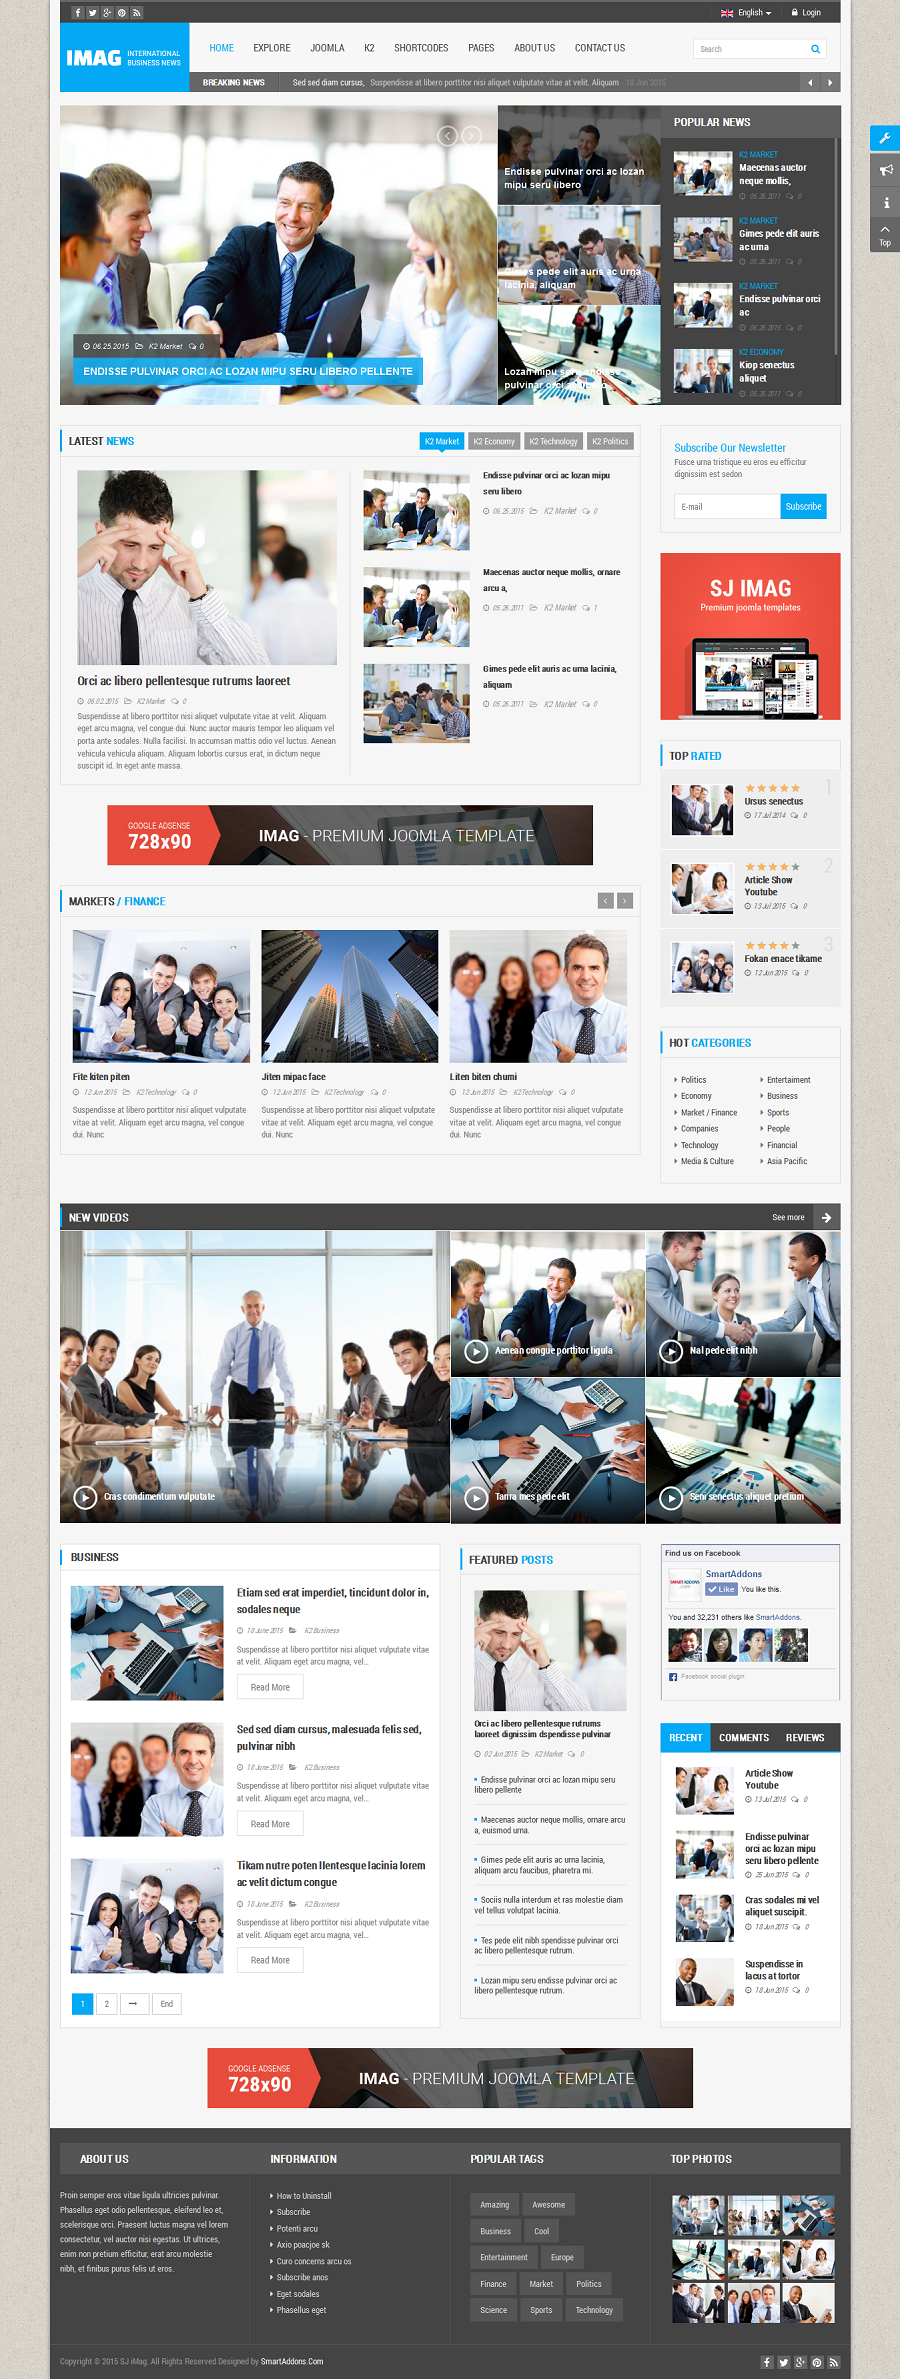 SJ iMag - Responsive Joomla News magazine Template - 08_boxed-layout.png